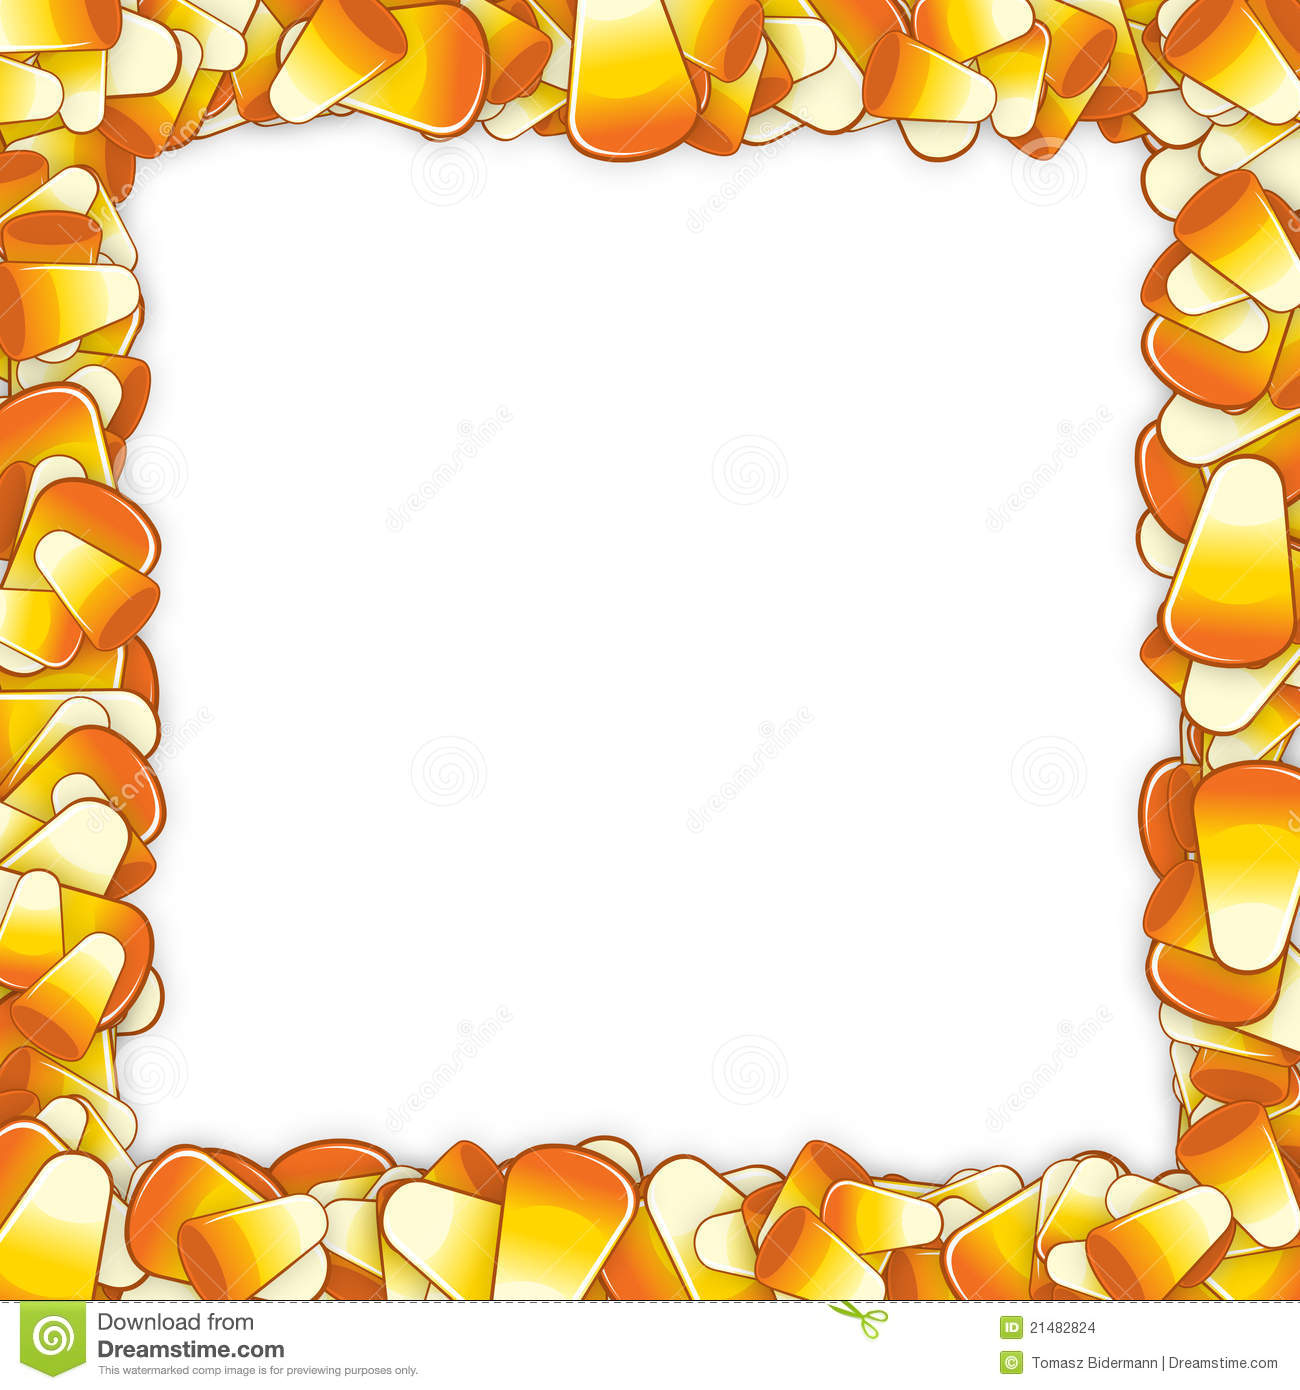 Candy clipart border - Candy PNG HD Border